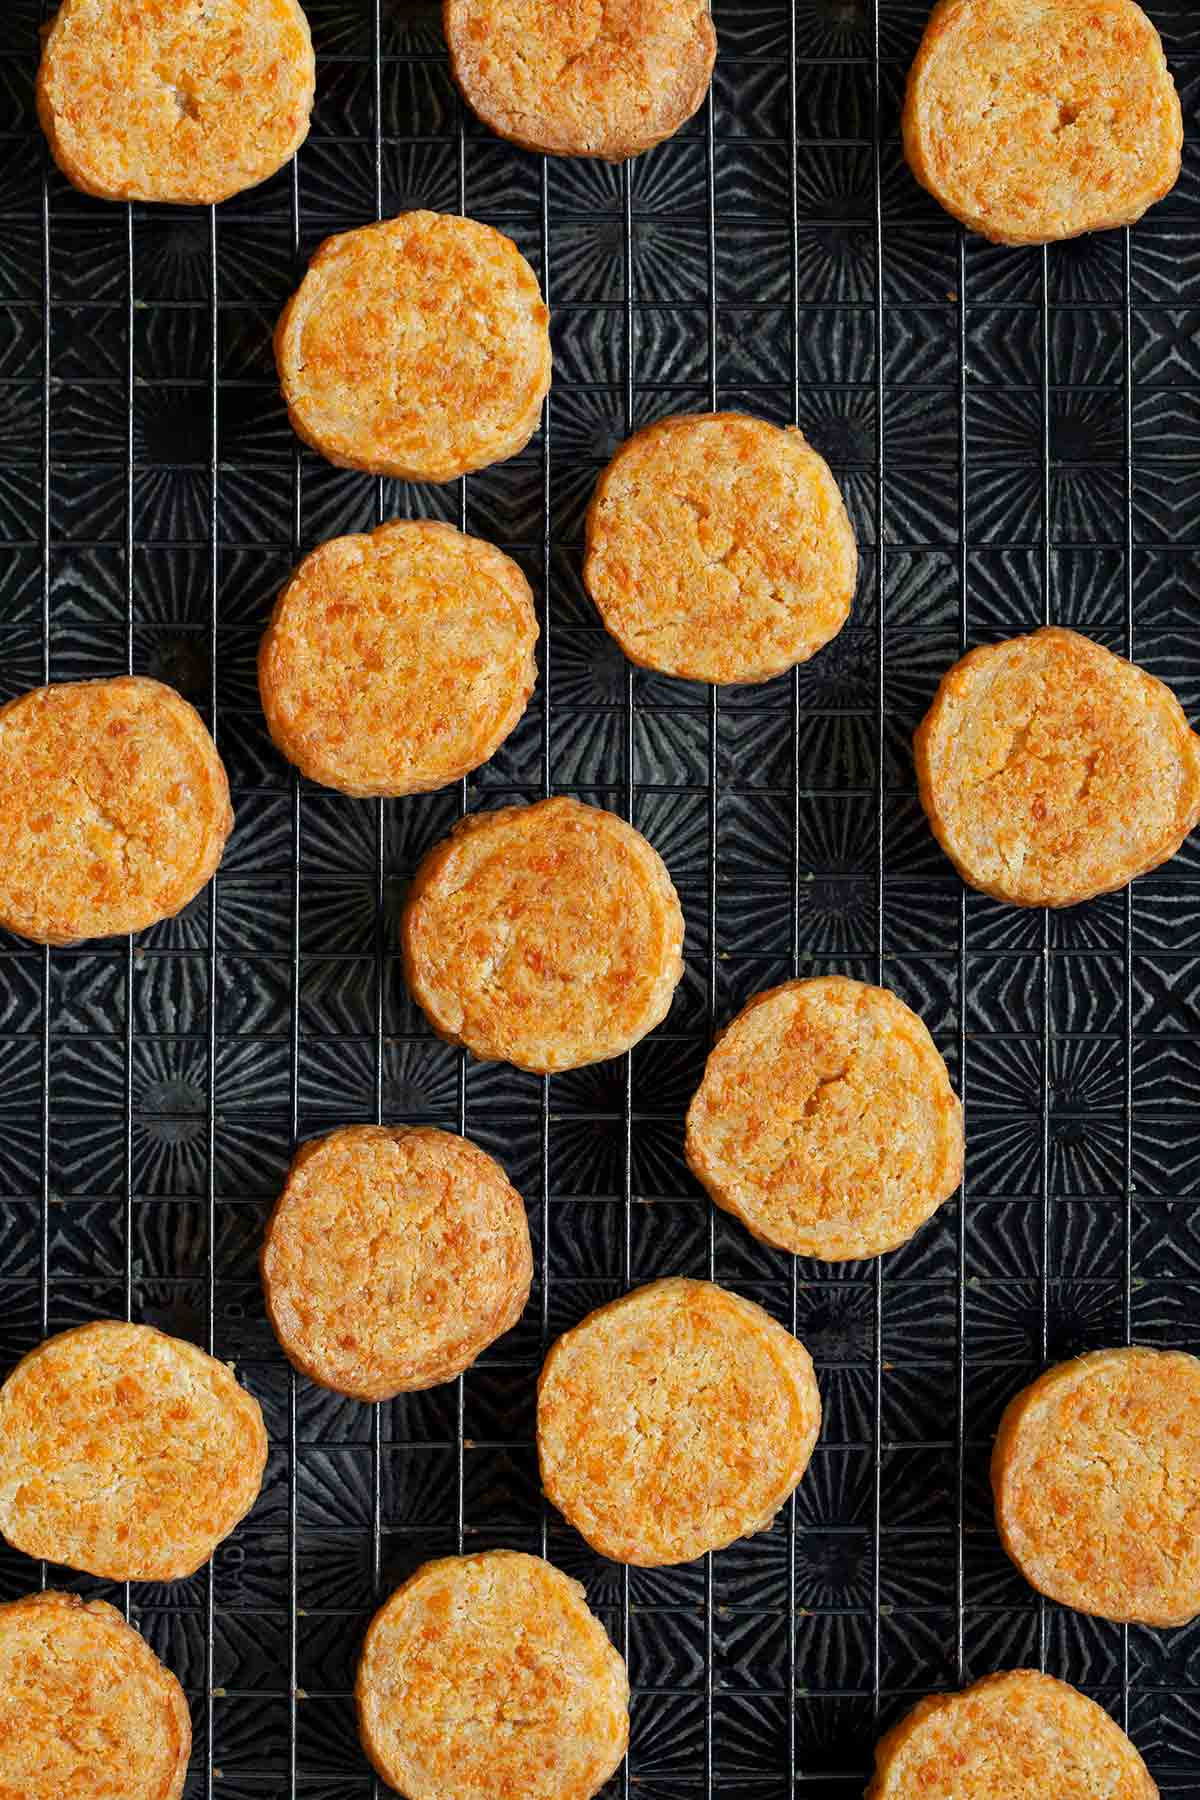 Cheddar-Parmesan crackers on a black wire rack.